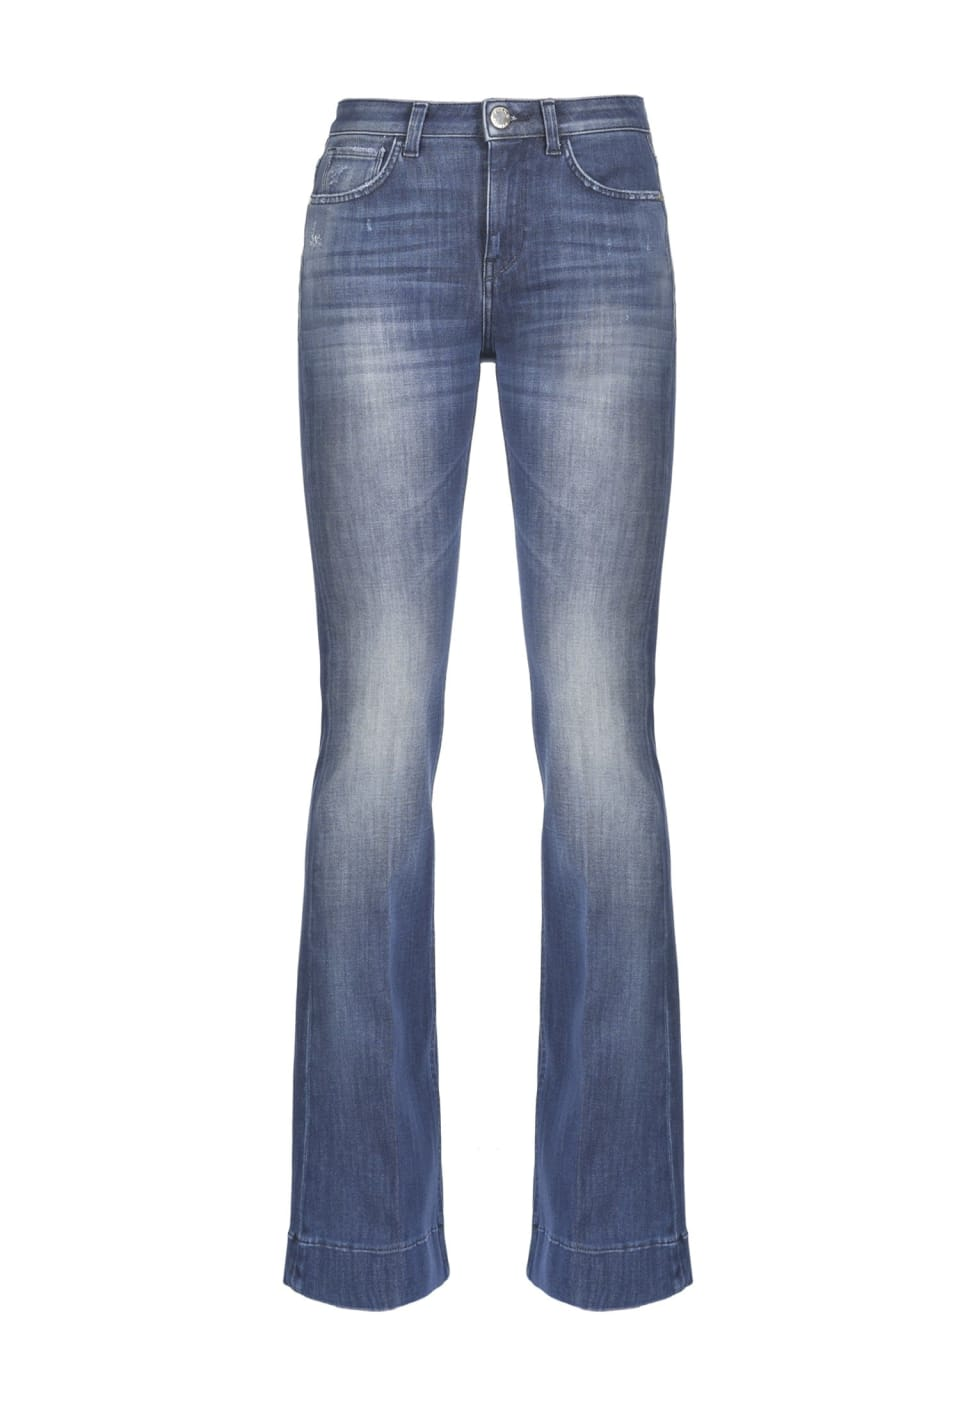 Flare jeans in two-way stretch denim